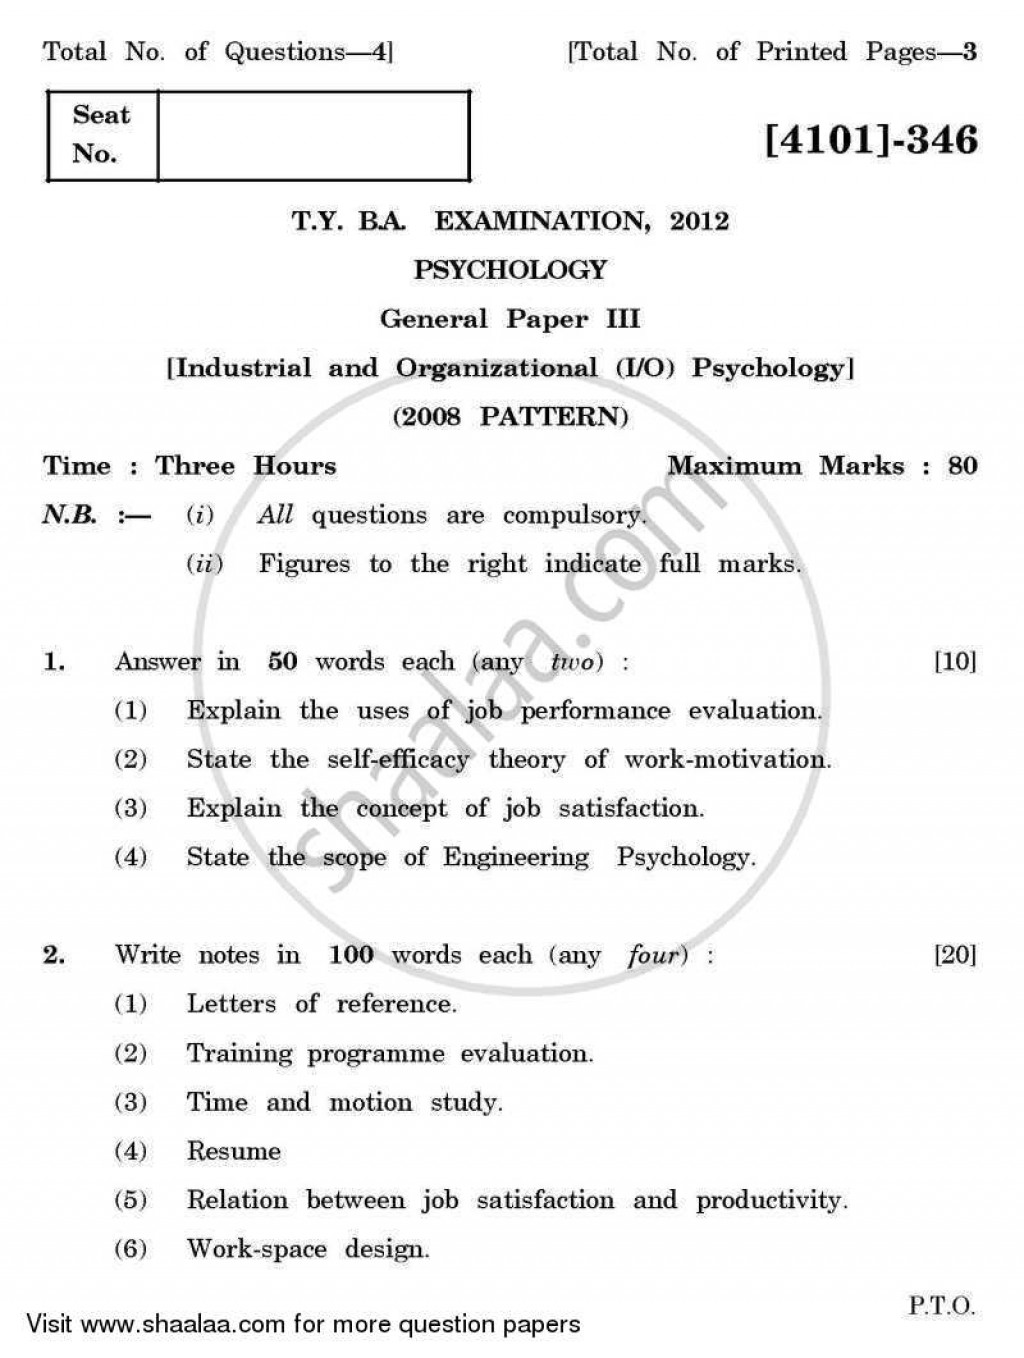 015 Research Papers For Psychology Paper University Of Pune Bachelor General Industrial Organizational Tyba 3rd Year 2011 2423148fb186f44d8a12cf9 Fascinating Topics Educational Types Large